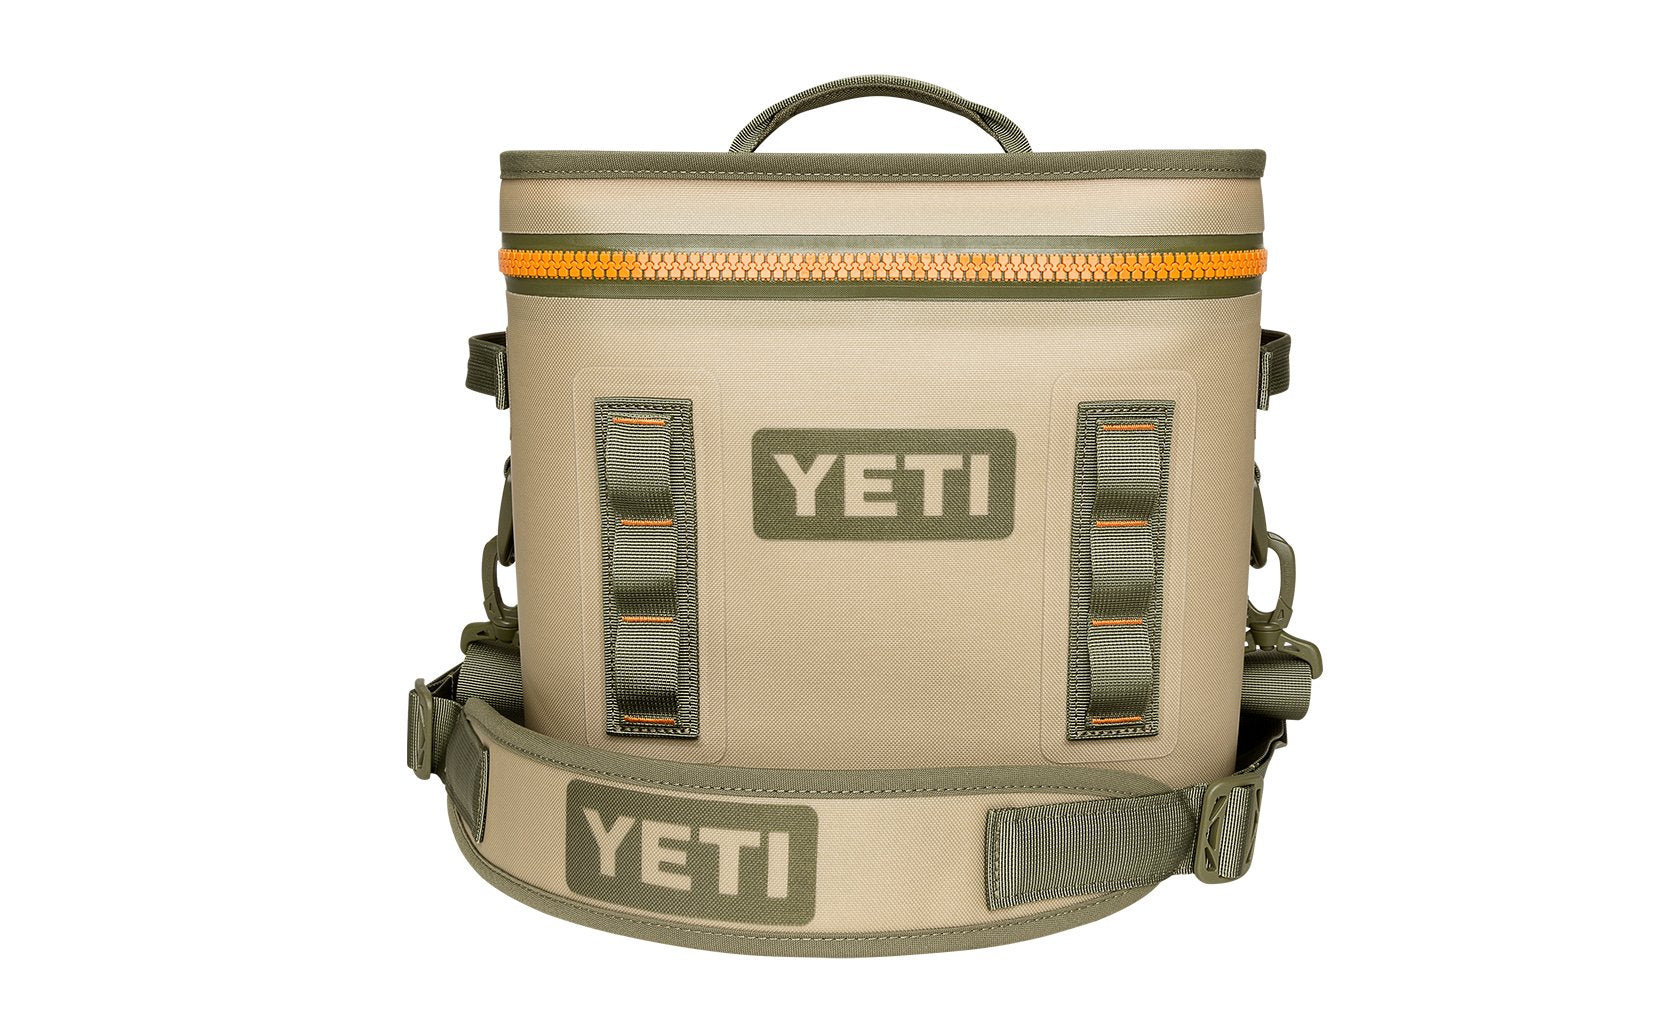 Yeti Hopper Flip 18 Field Tan/Blaze Orange (Top Handle) - Board Store YetiSoft Cooler